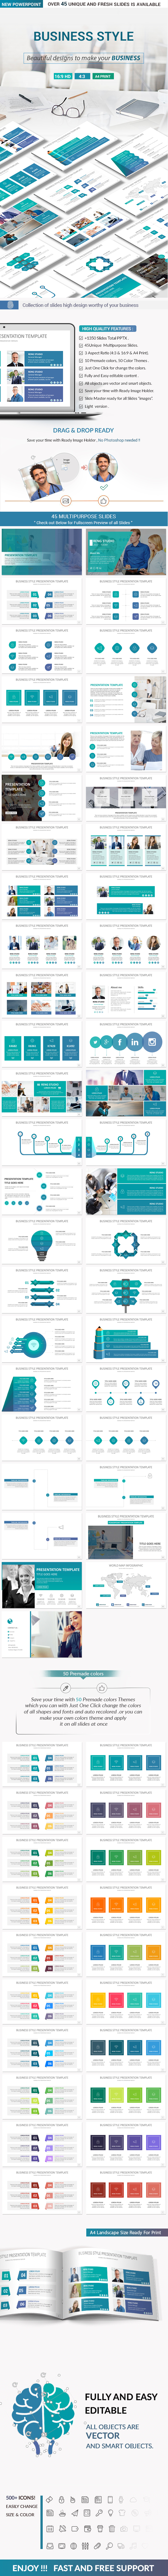 Business Style PowerPoint Presentation Template - Business PowerPoint Templates